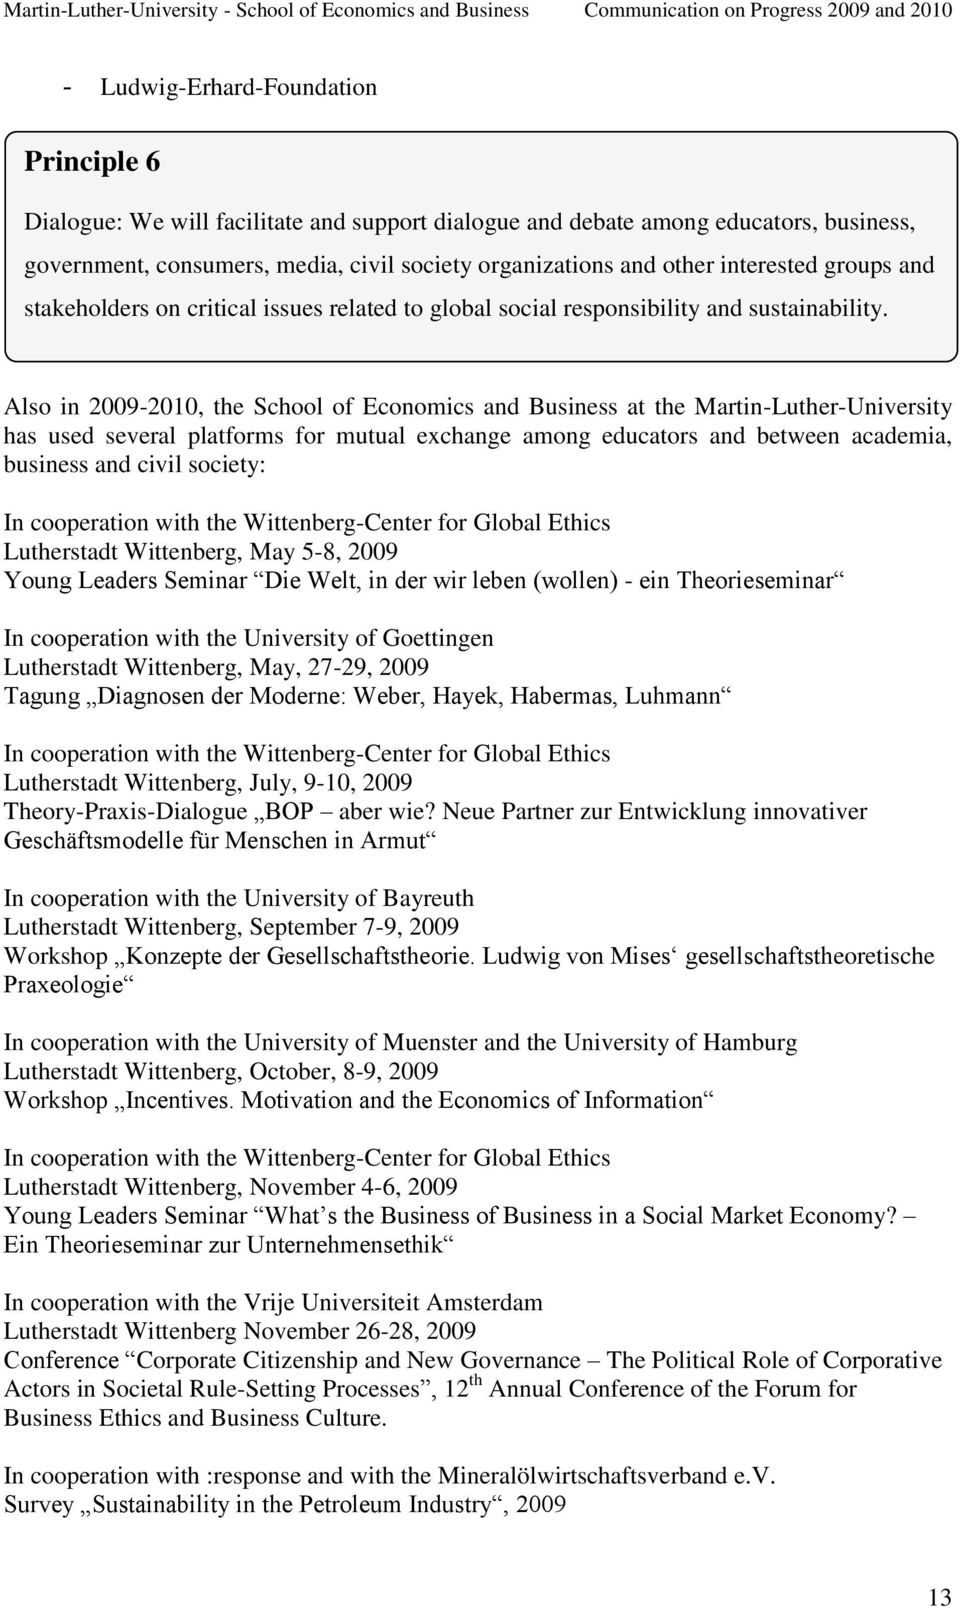 Also in 2009-2010, the School of Economics and Business at the Martin-Luther-University has used several platforms for mutual exchange among educators and between academia, business and civil